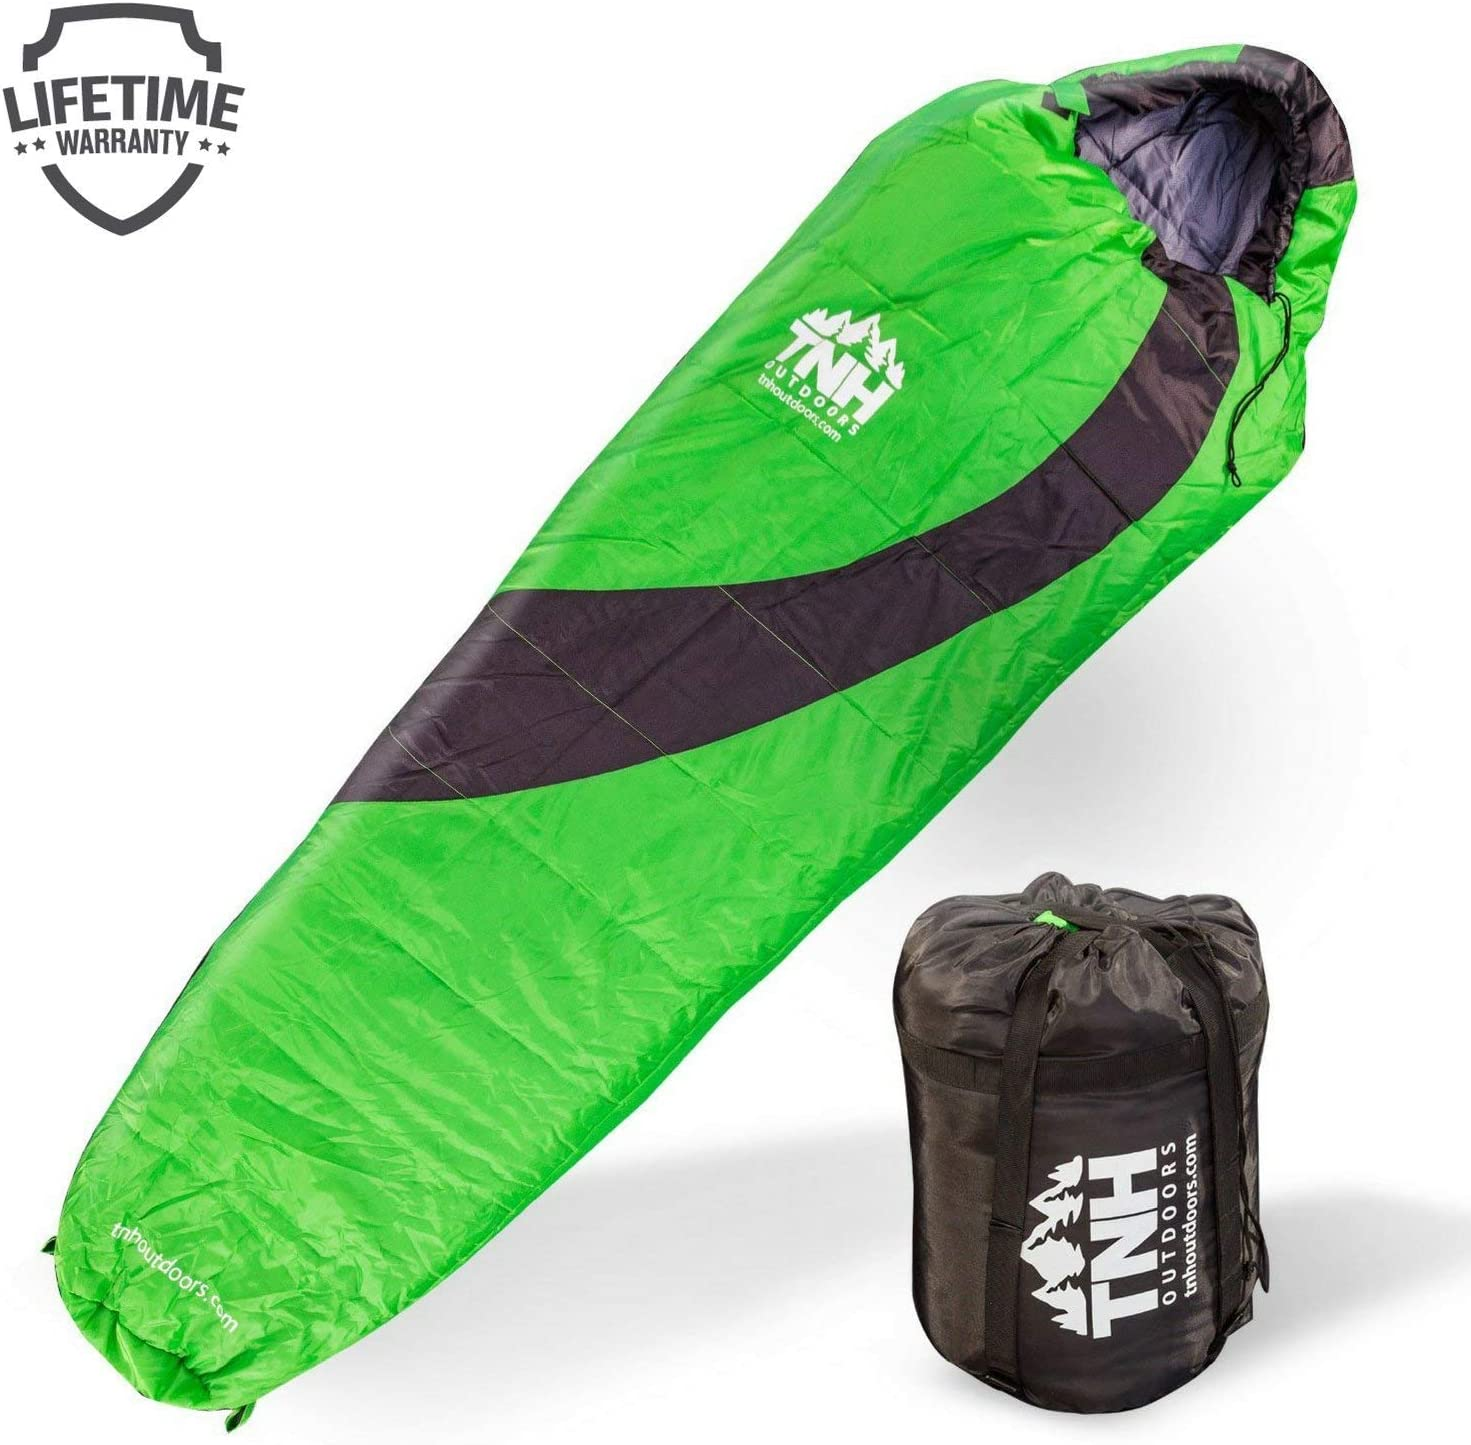 TNH Outdoors Sleeping Bag – Mummy Lightweight Portable, Waterproof, Comfort with Compression Sack – Great for 3 – 4 Season Camping Warm in Winter, Travelling, Hiking, Adult Outdoors Gear